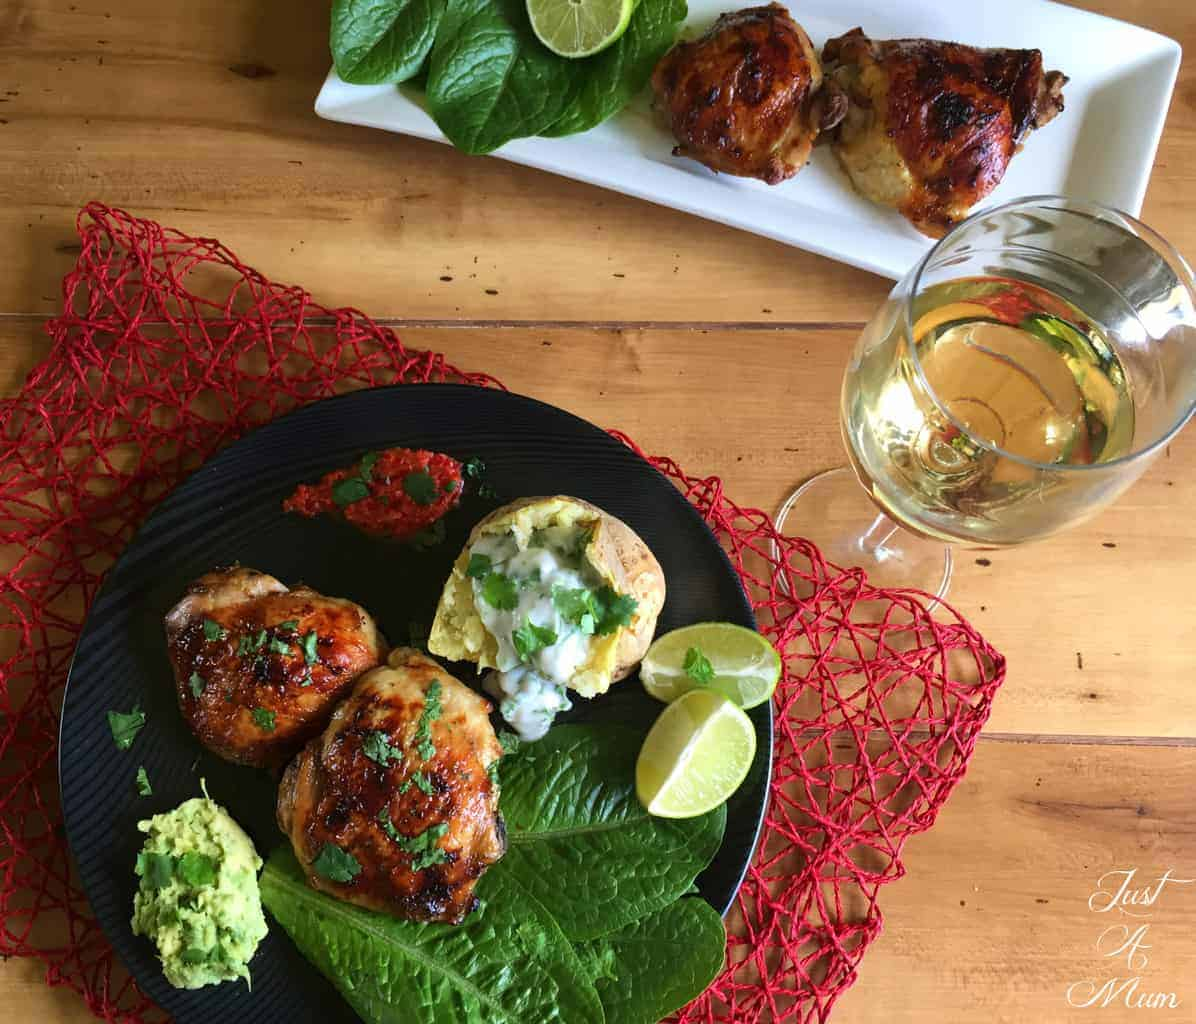 Nigella's Tequila & Lime Chicken - Just A Mum